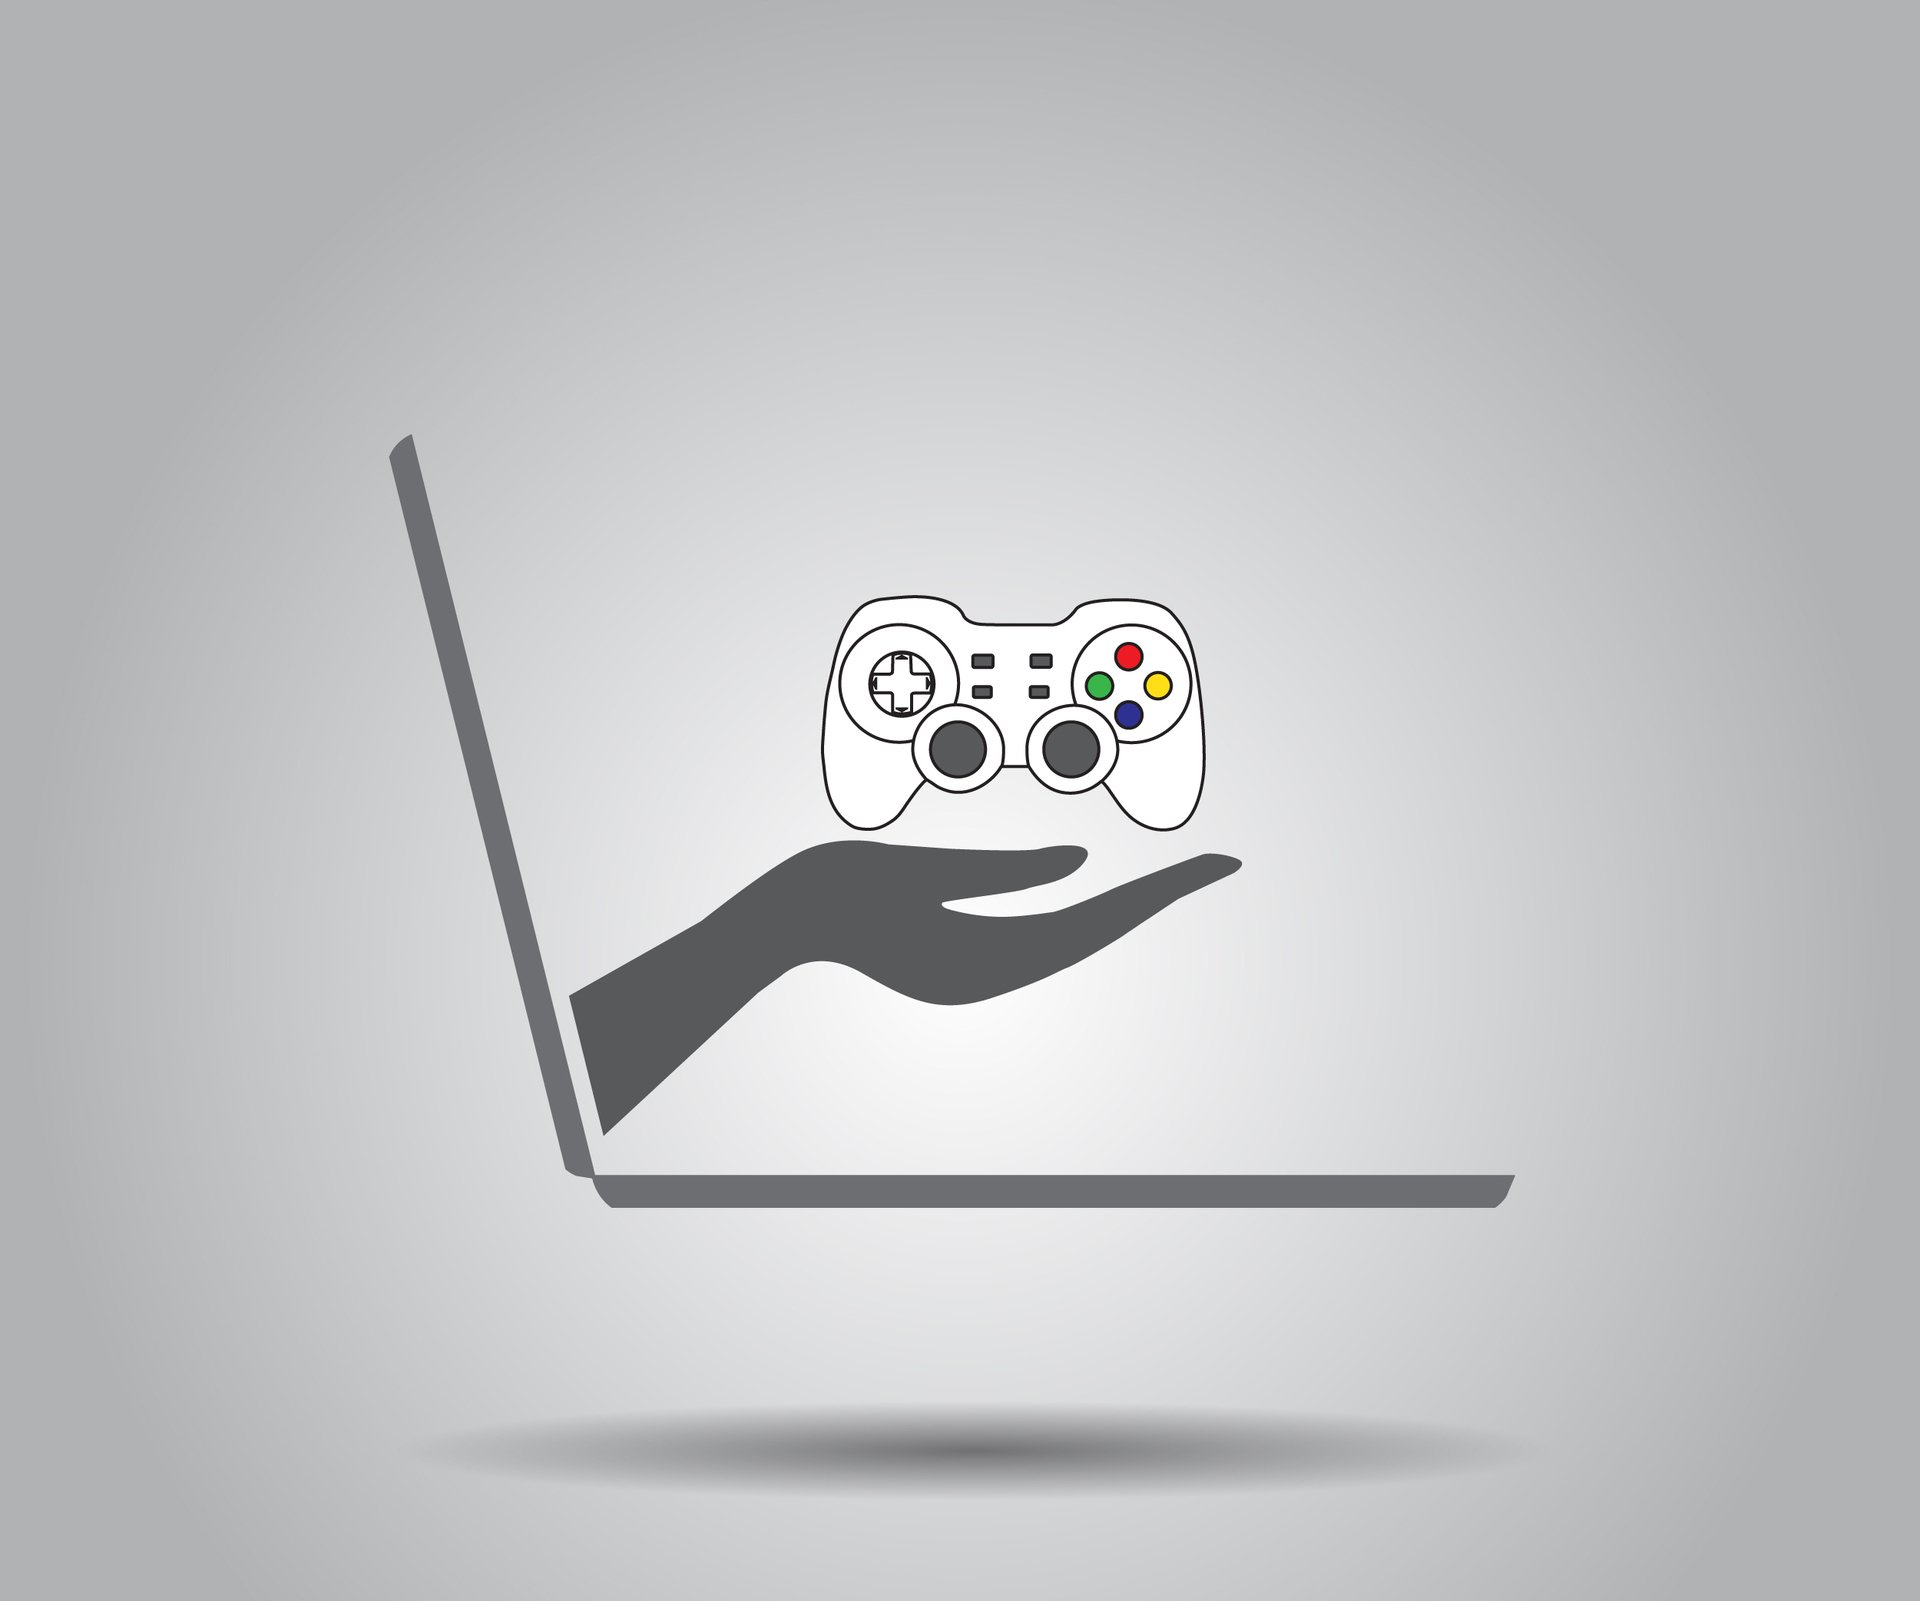 2 Top Tips To Make Compliance Training Fun Through Gamification